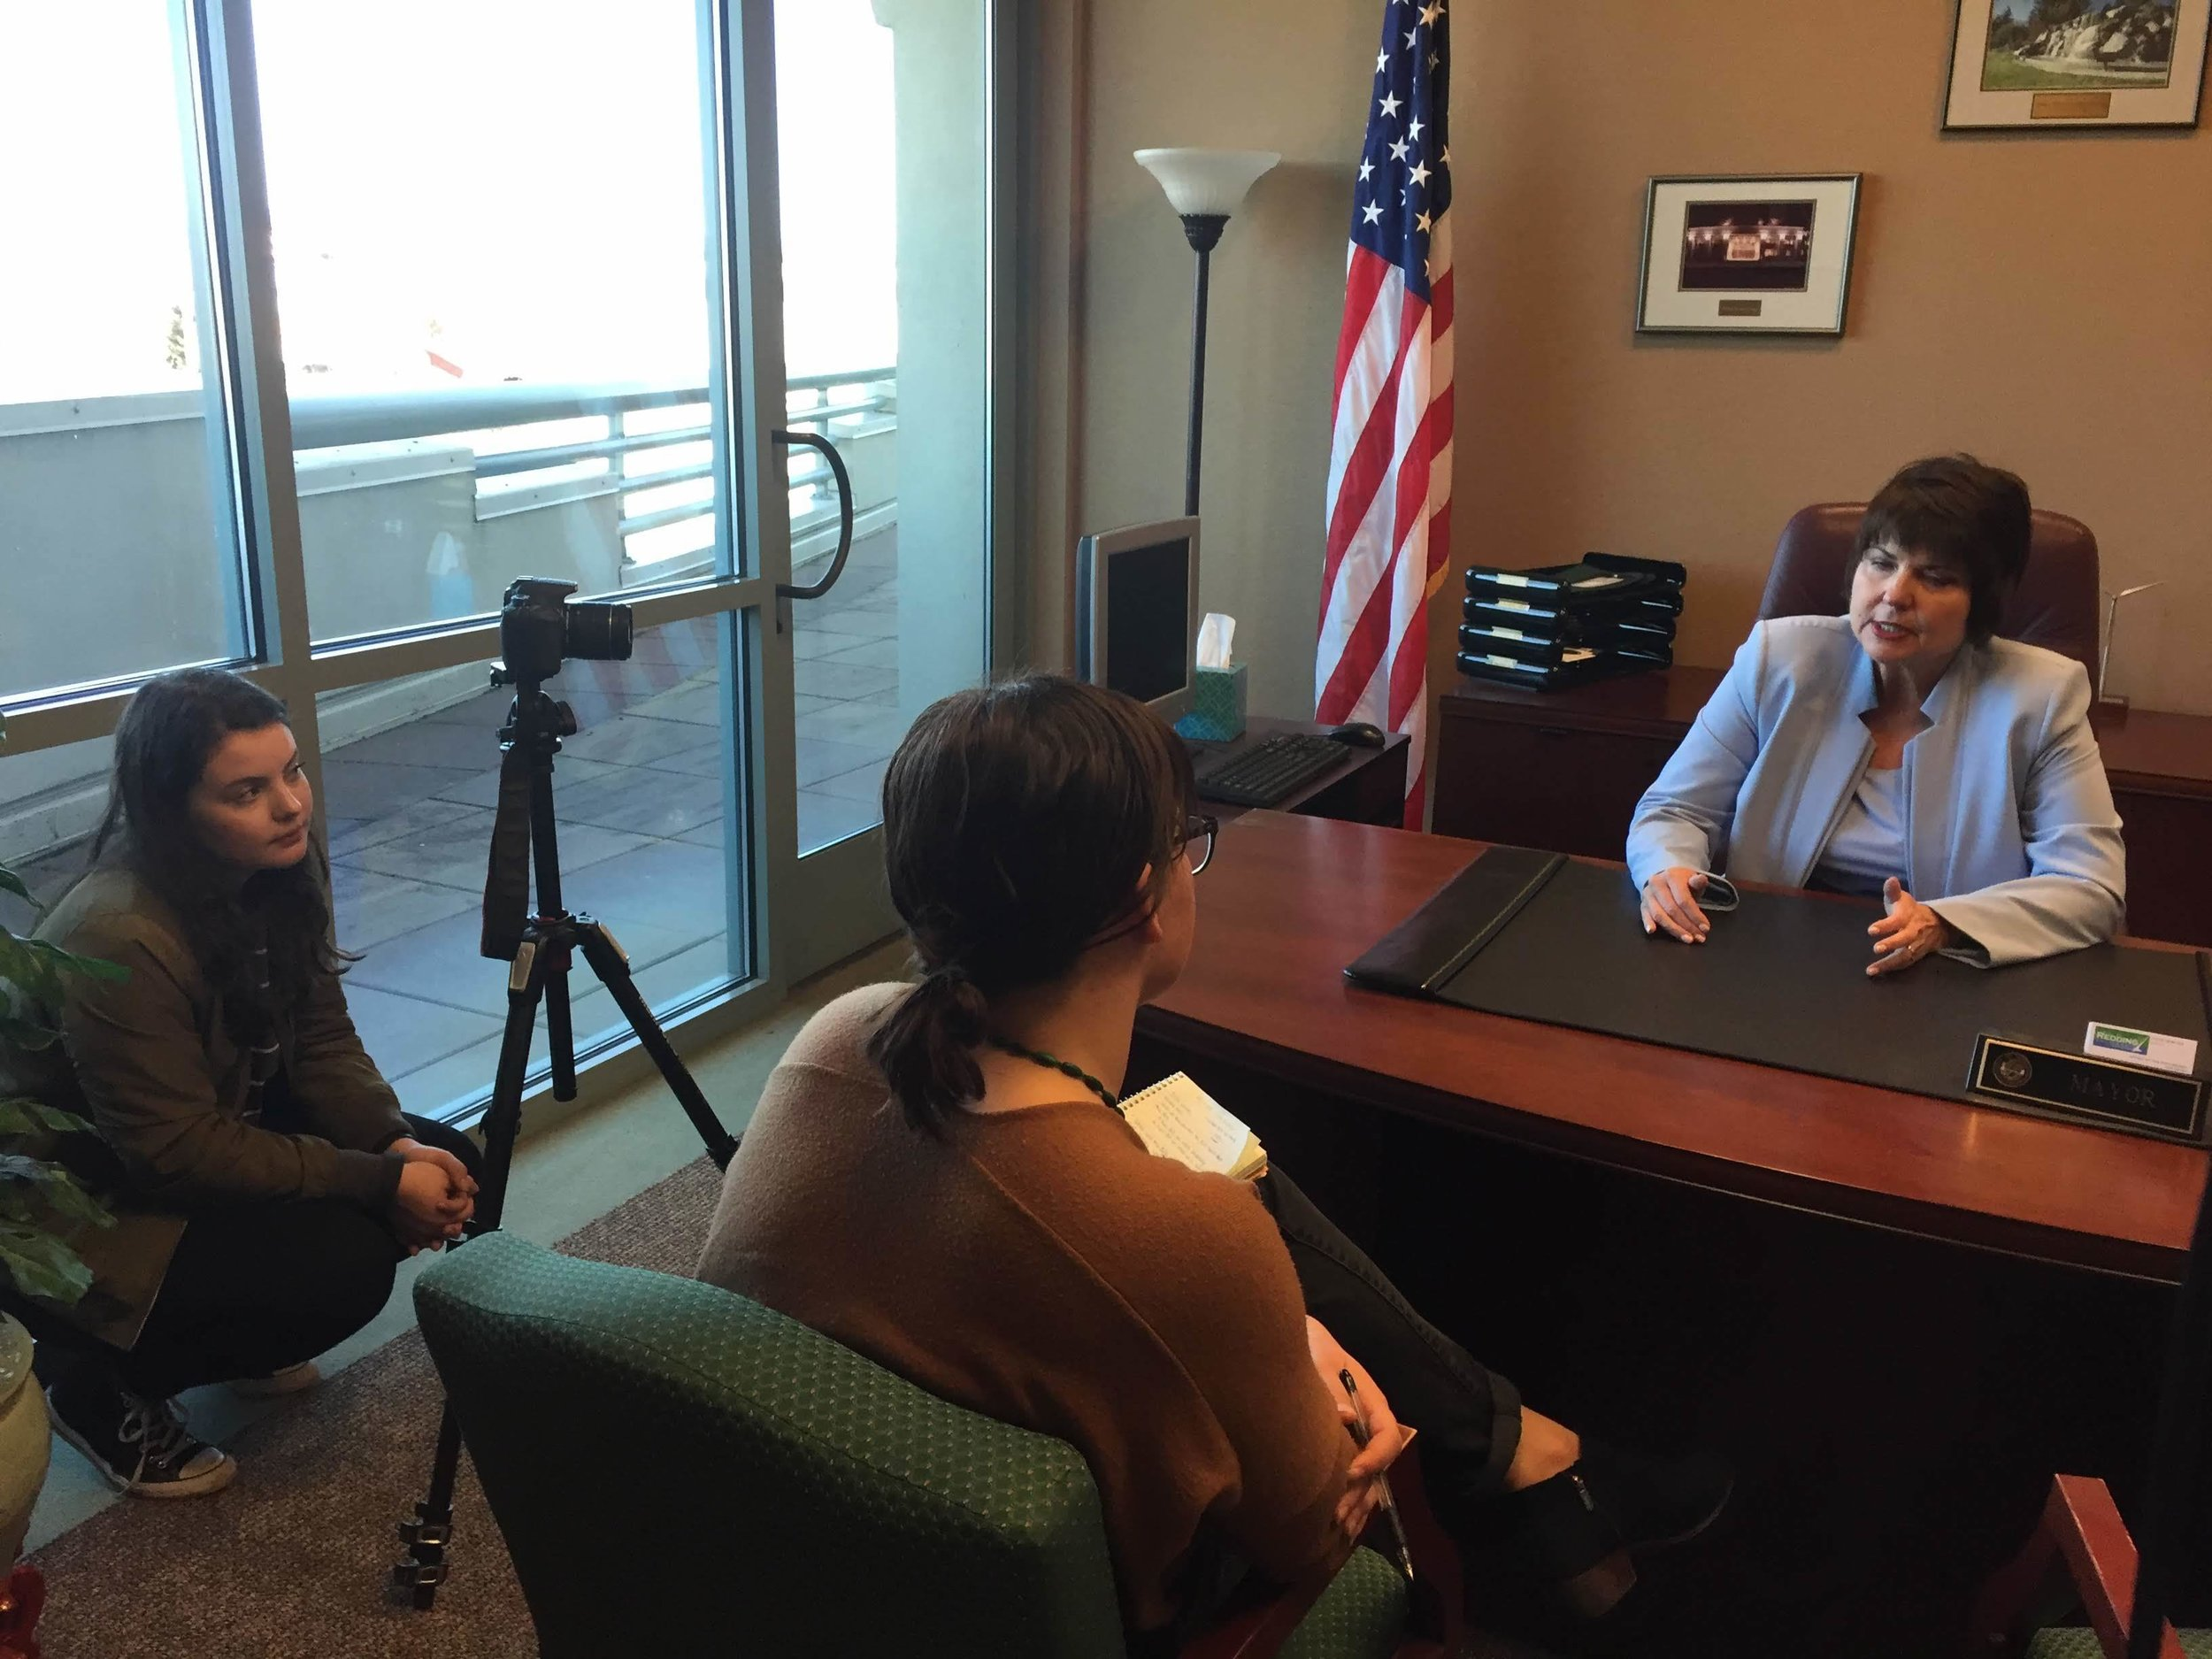 Emily Callahan (left) and Erika Soderstrom (middle) interviewing Julie Winter, Mayor of Redding, California.